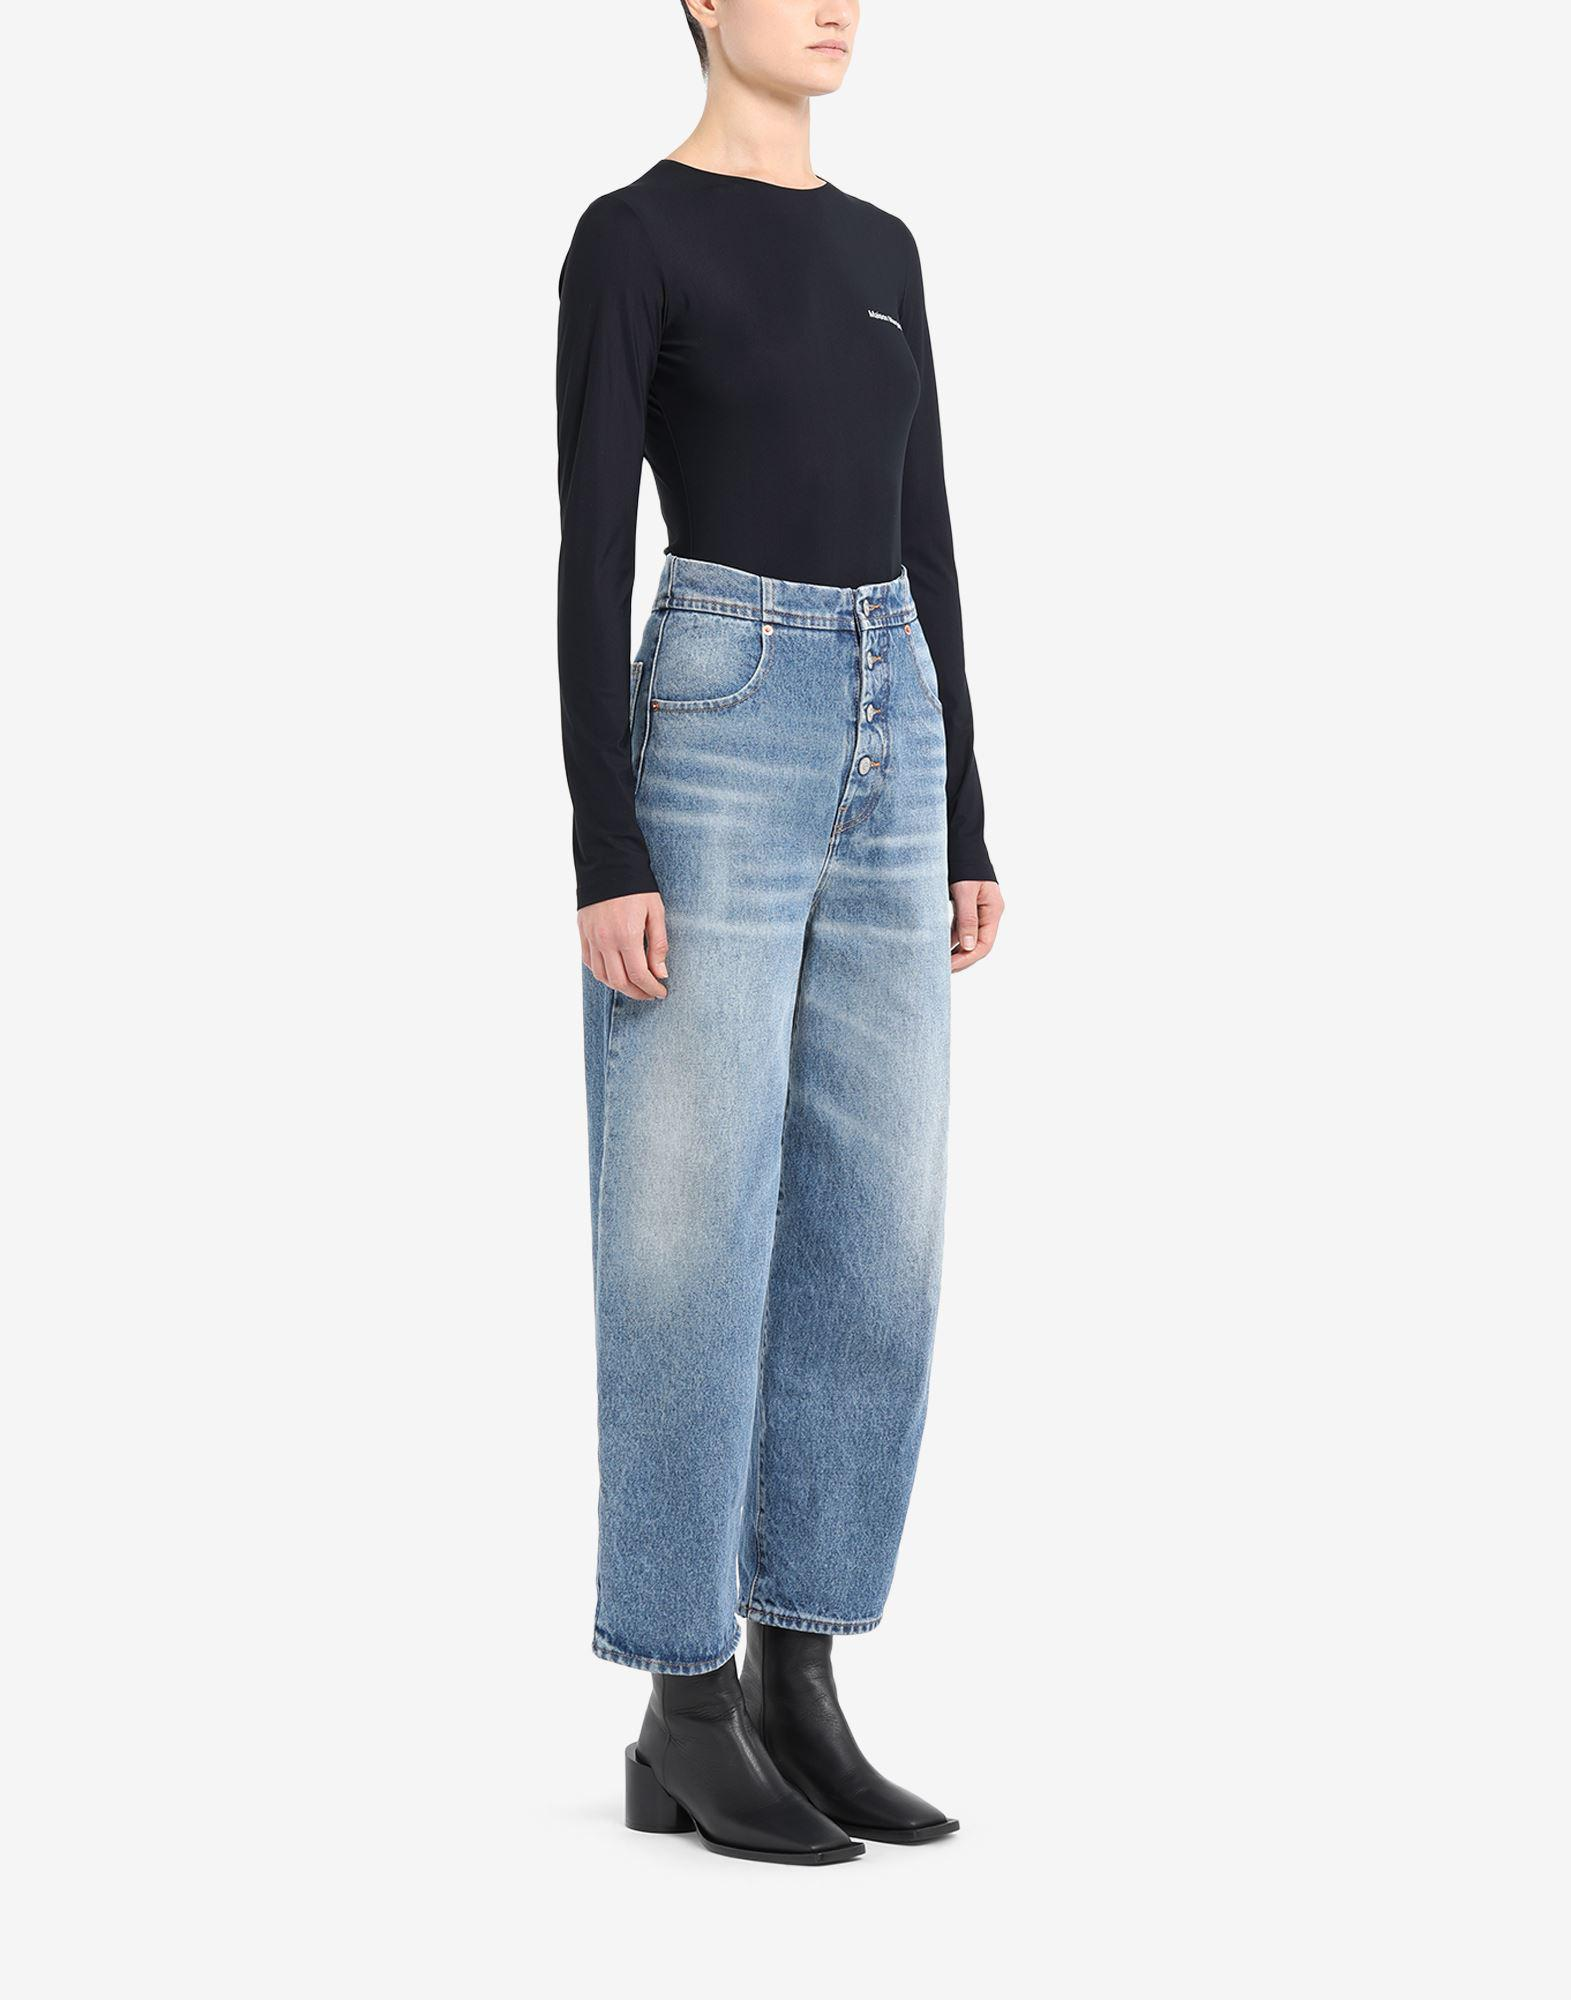 Carrot jeans 1